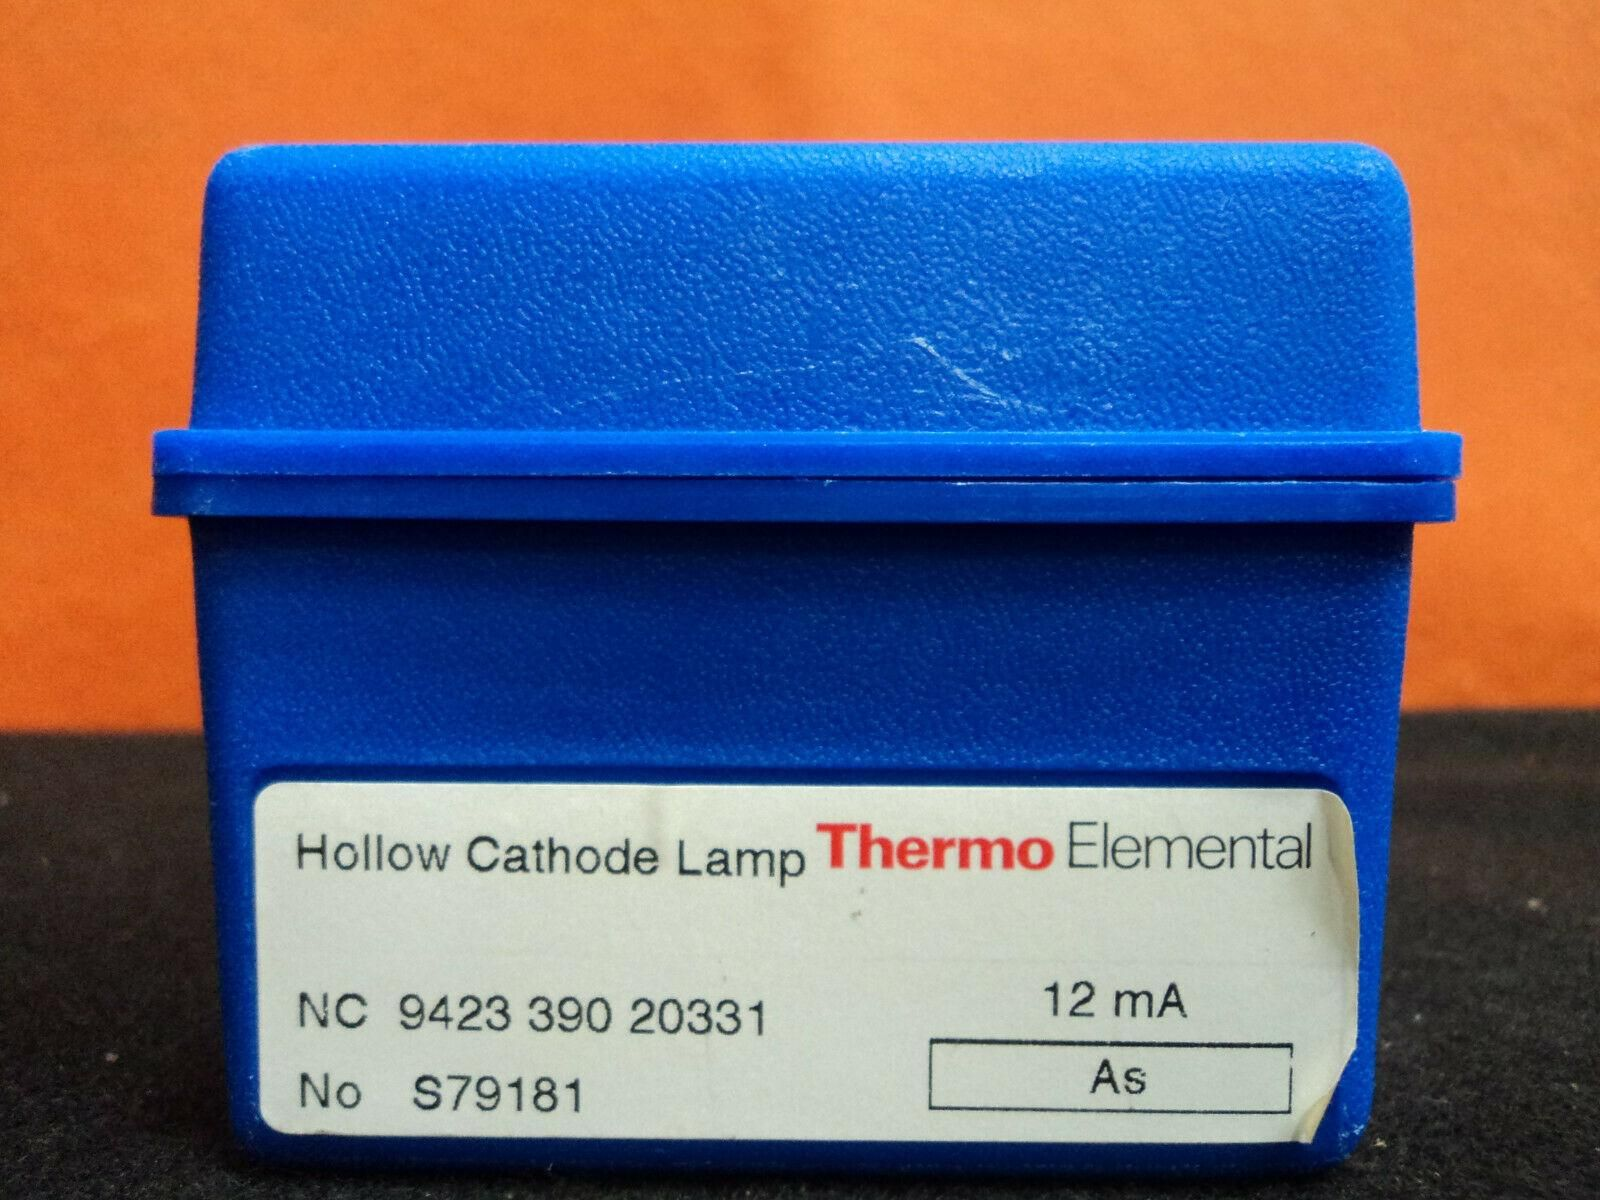 Thermo, TJA, Fisher Hollow Cathode Lamps As Mo Al Zn Pb  - Working Lamps